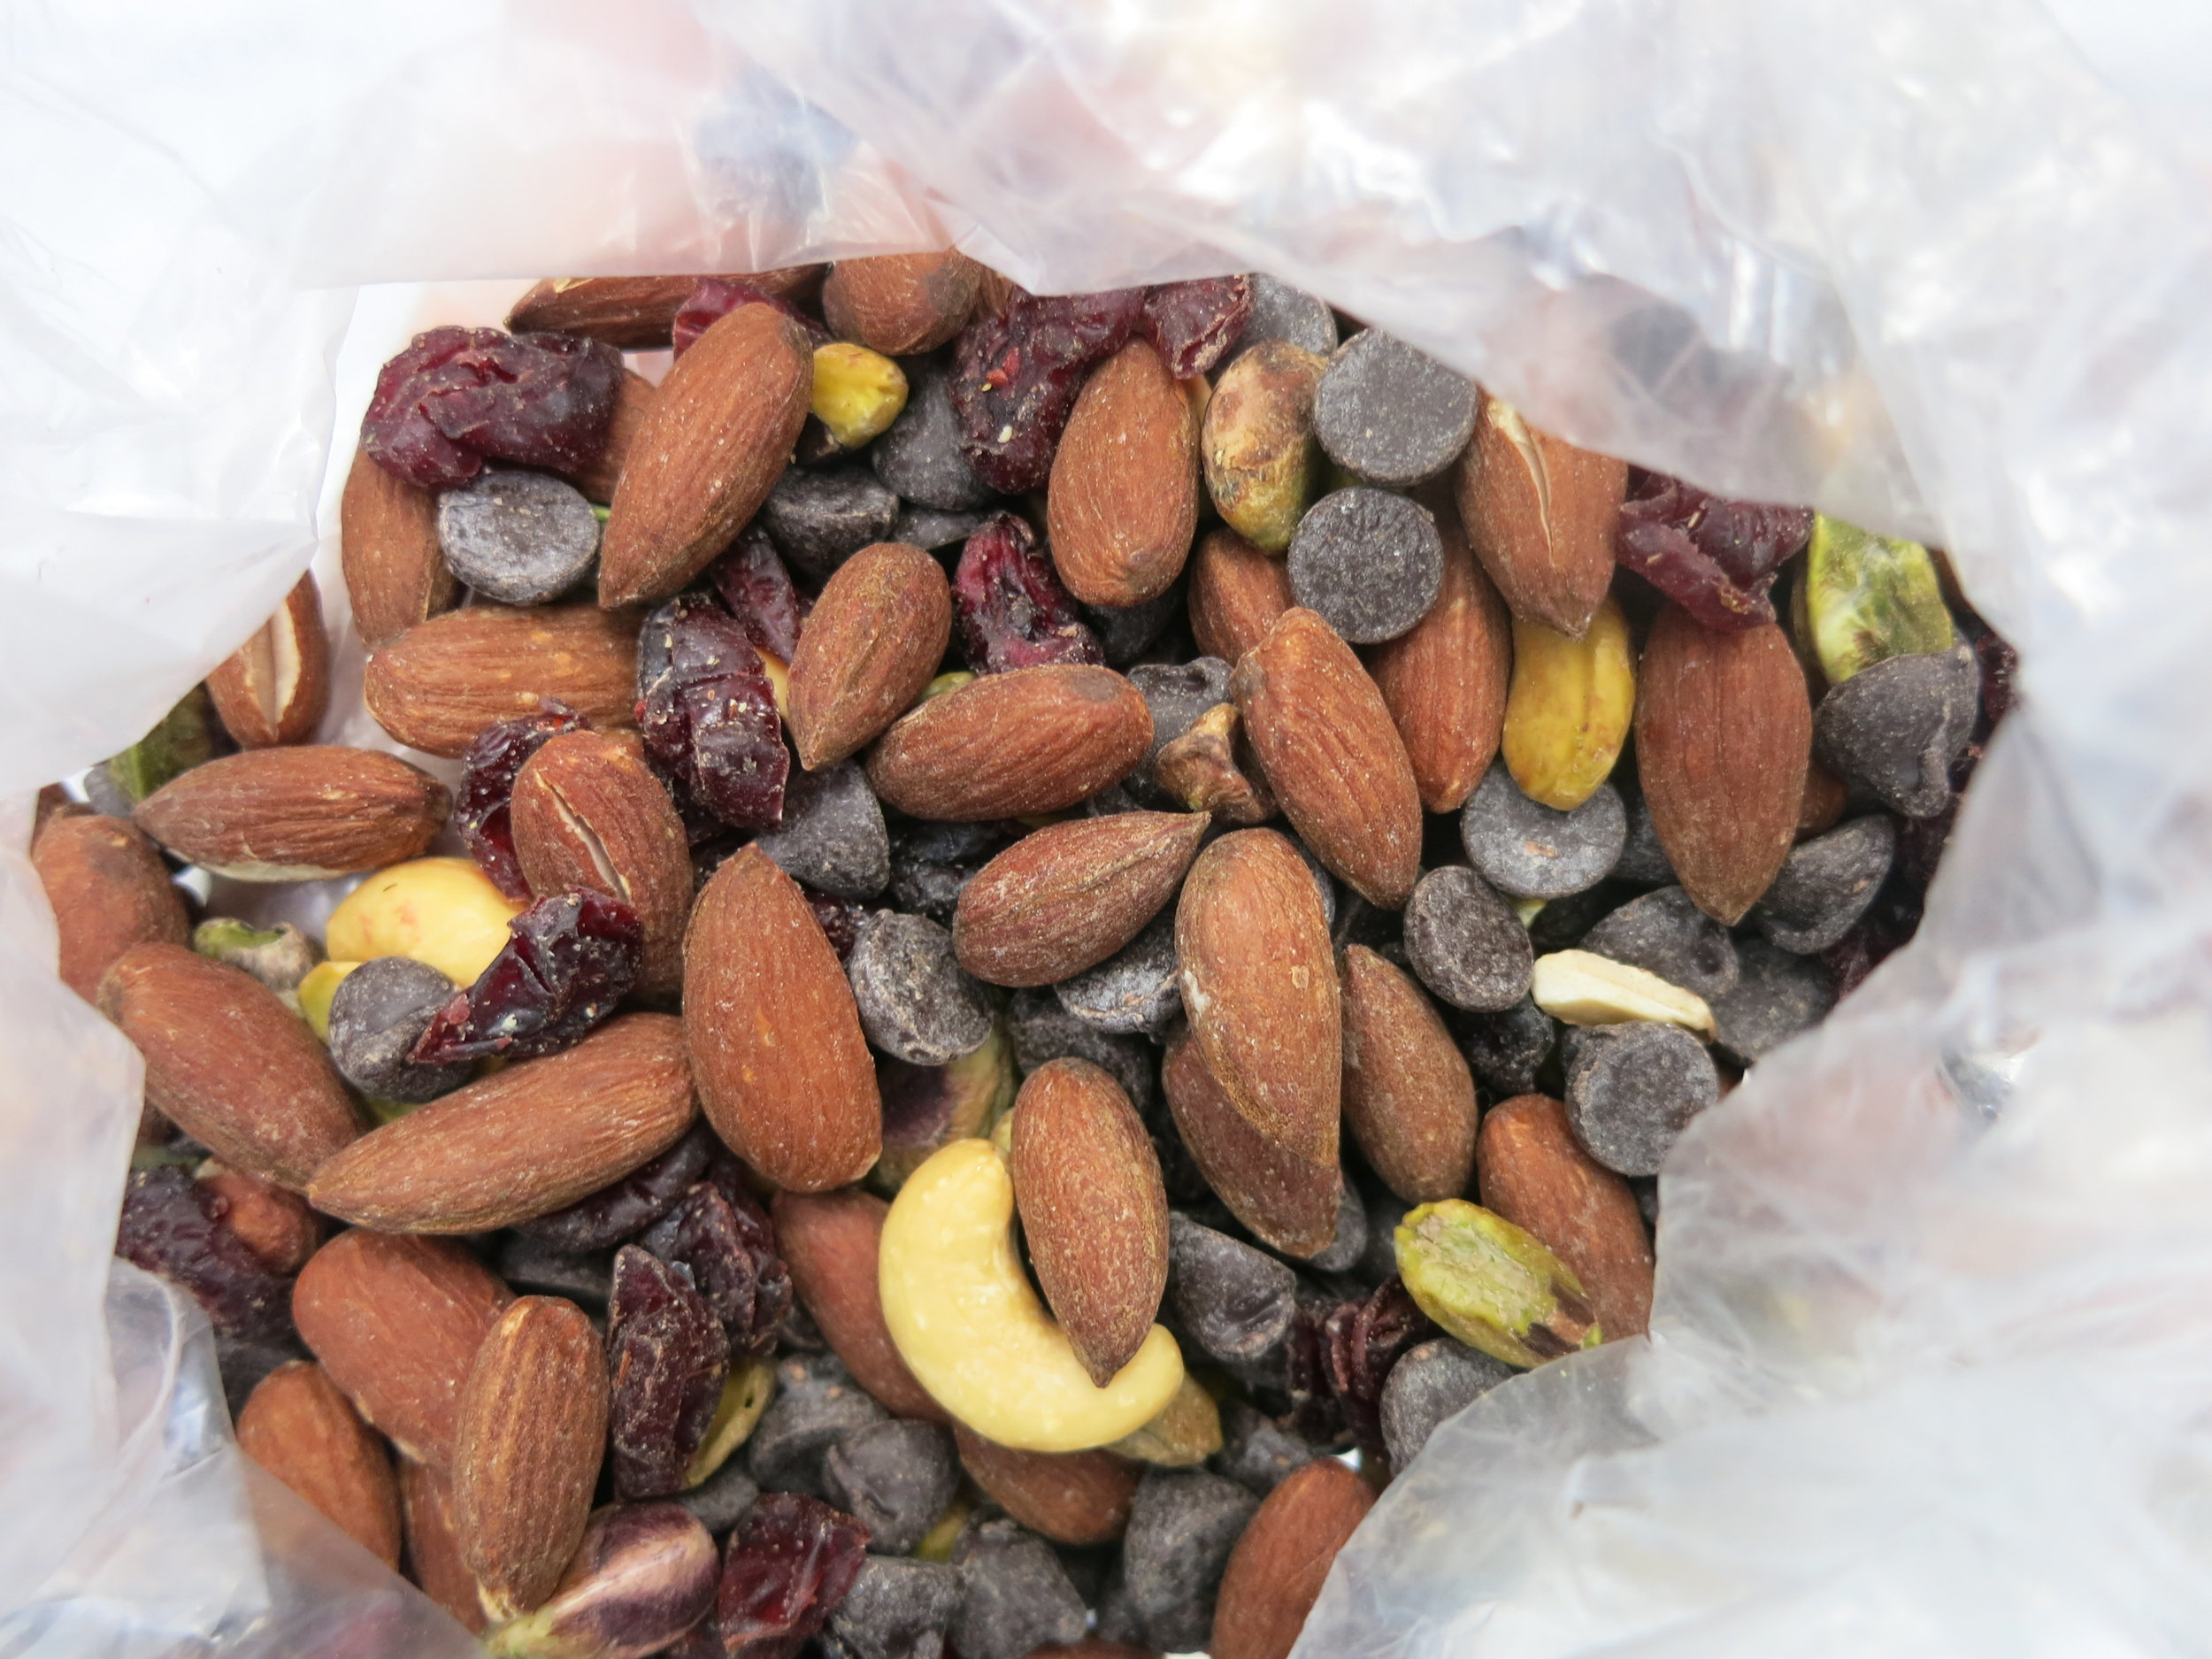 Will loves his trailmix so much he decided to take a picture of the inside of the bag.